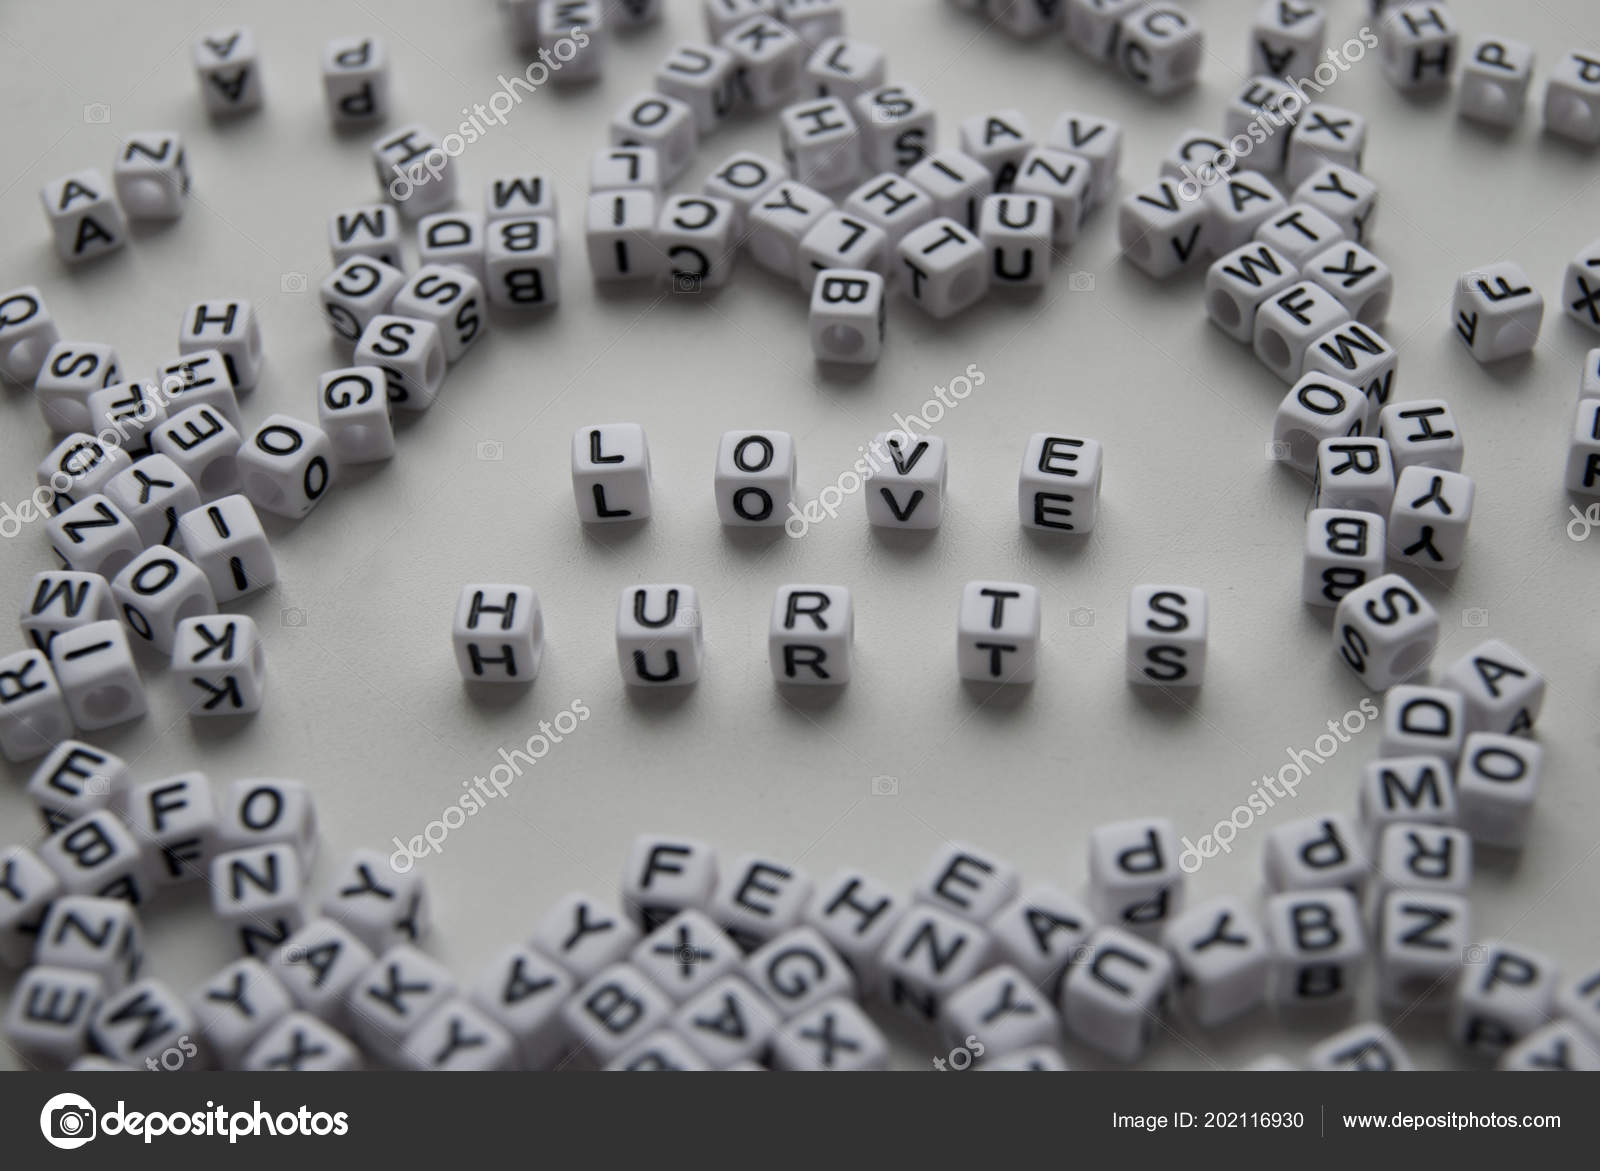 Love Hurts Word Written On Cubes On White Background Creative Text